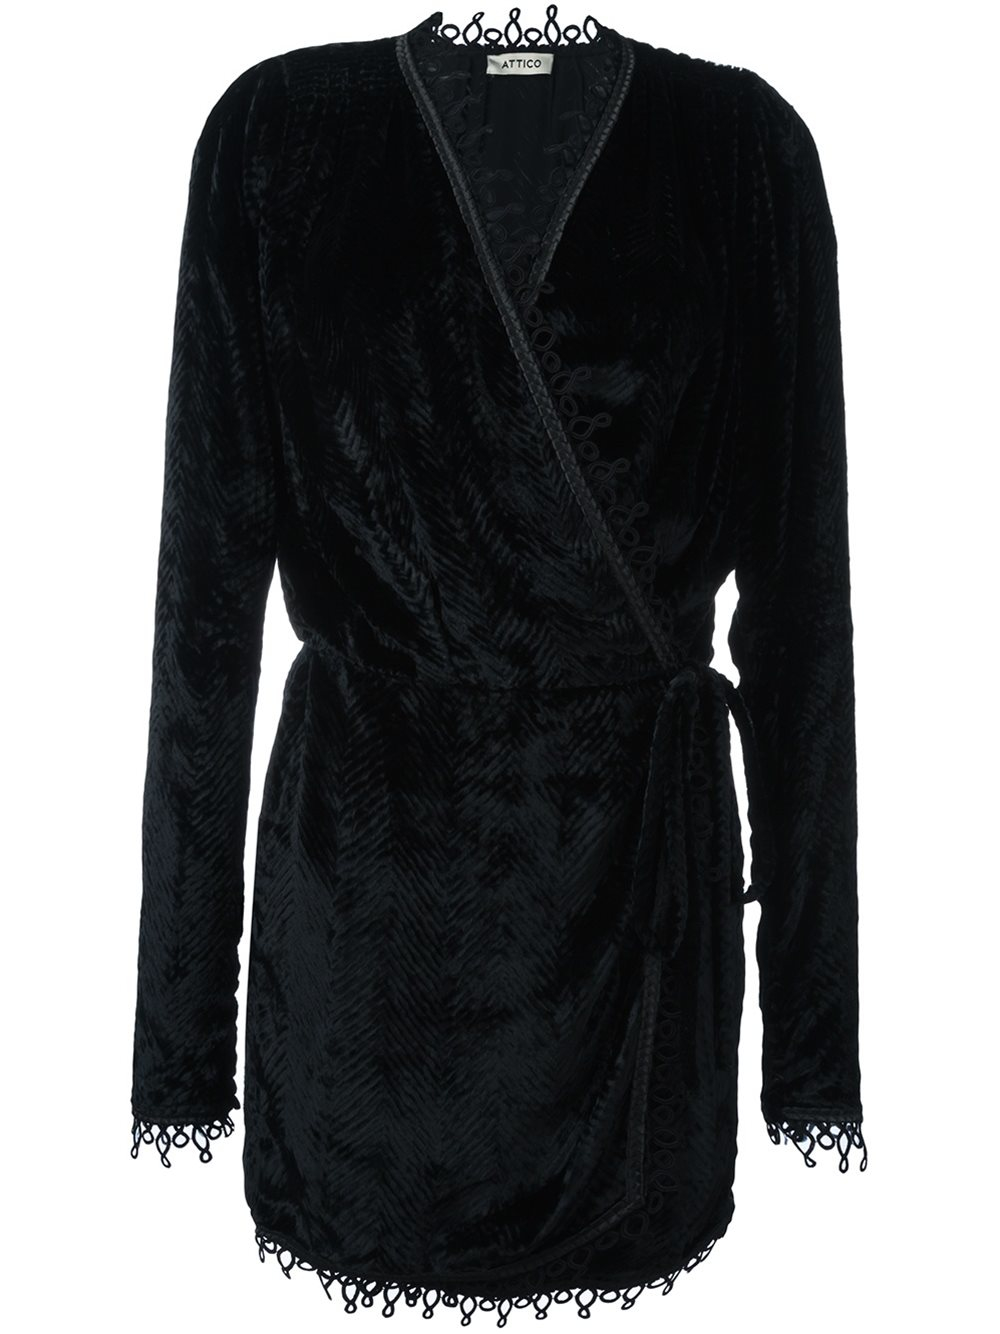 Attico Velvet Wrap Dress In Black Lyst